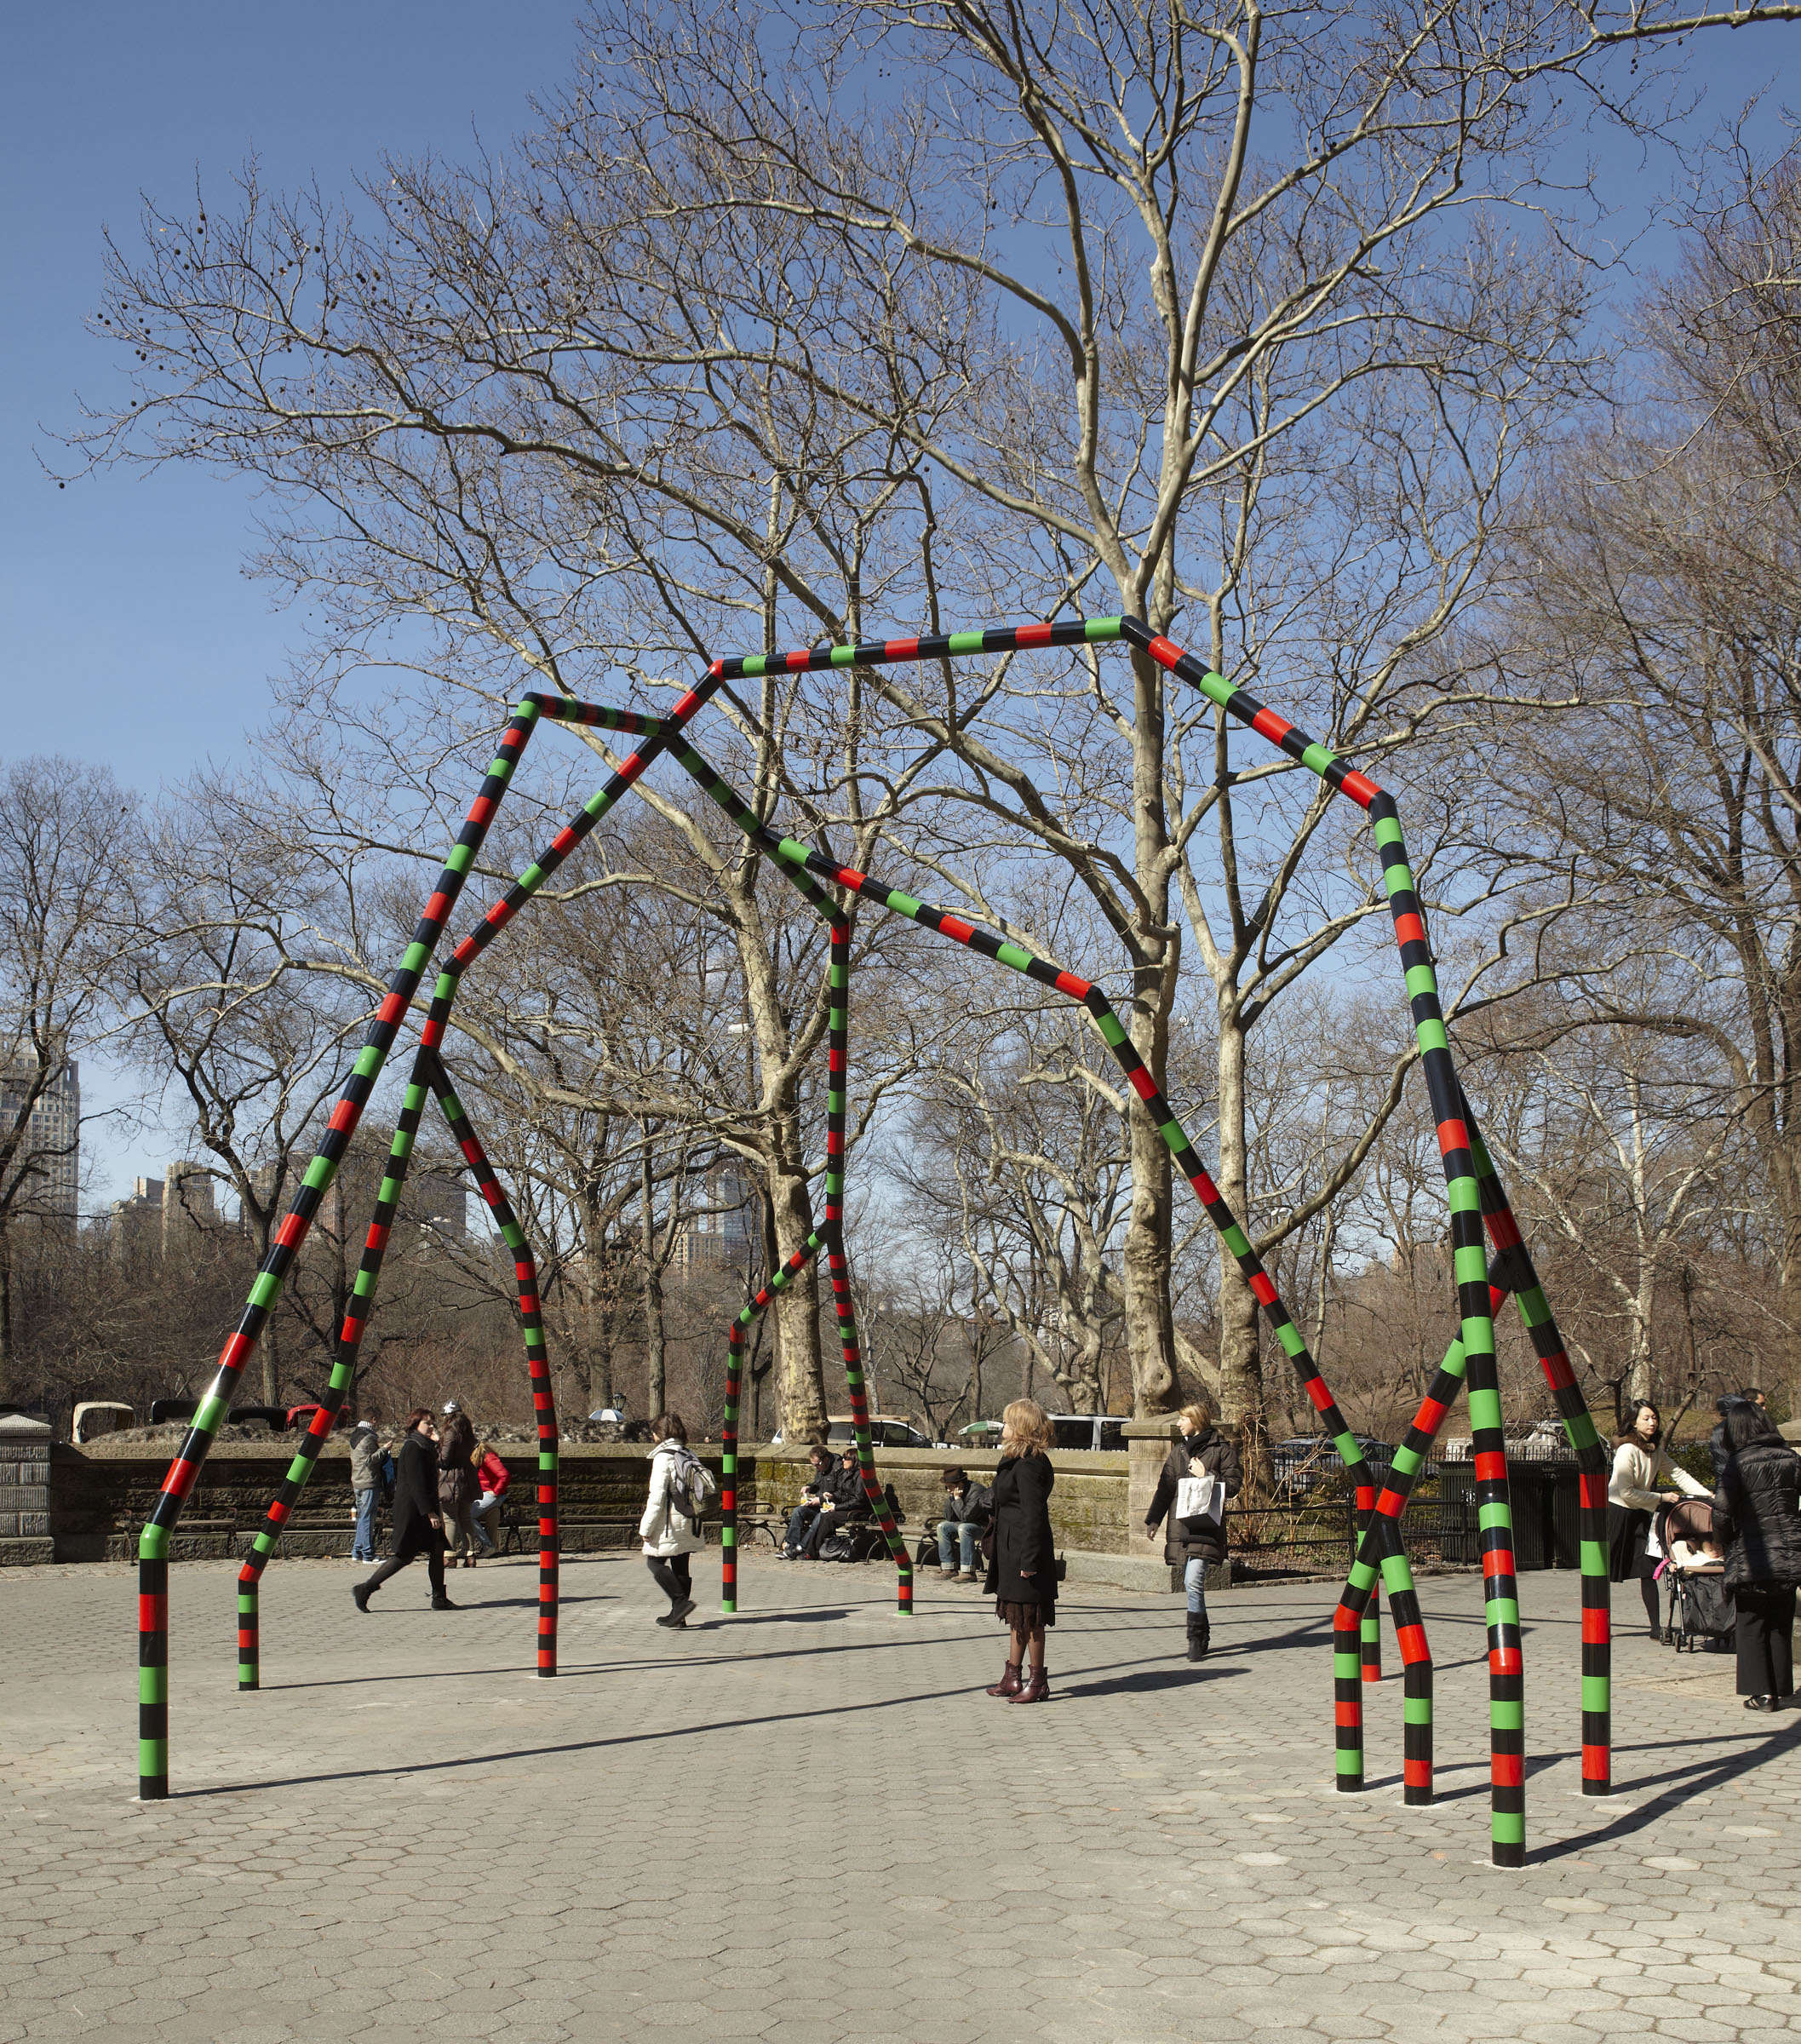 London-based Eva Rothschild will be part of the Nasher's Sightings series